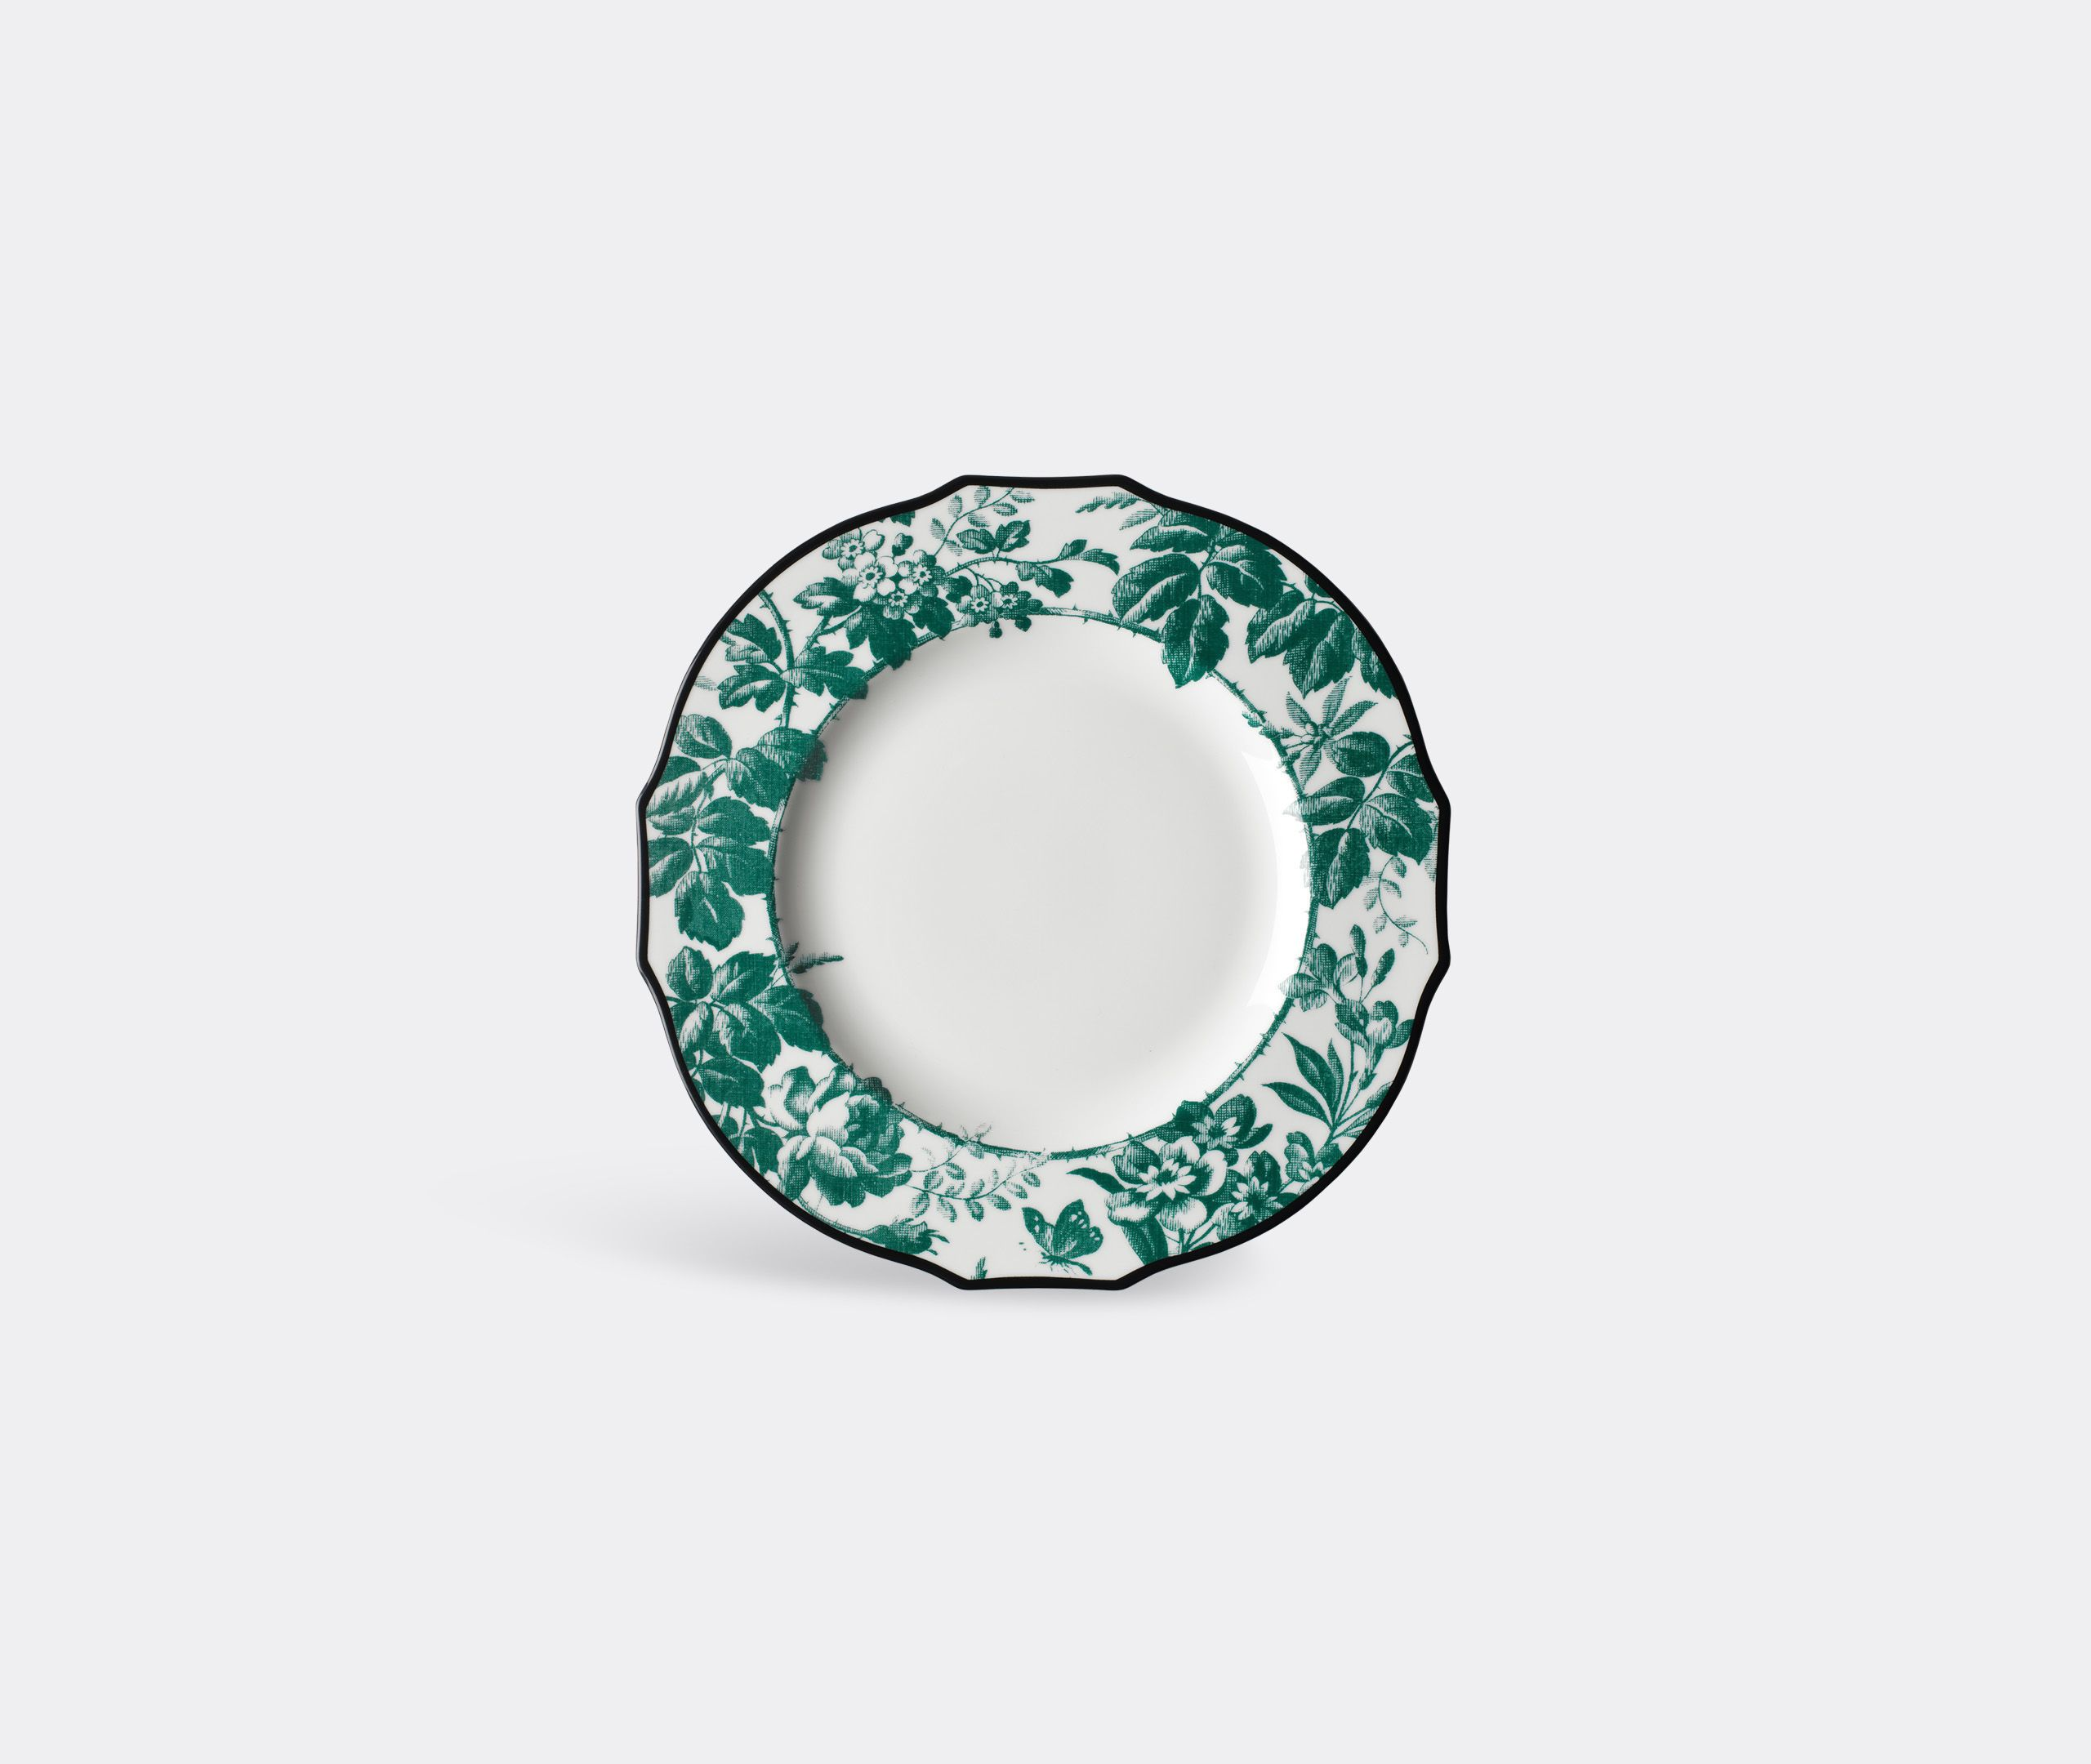 'Herbarium' dinner plate, set of two Alessandro Michele